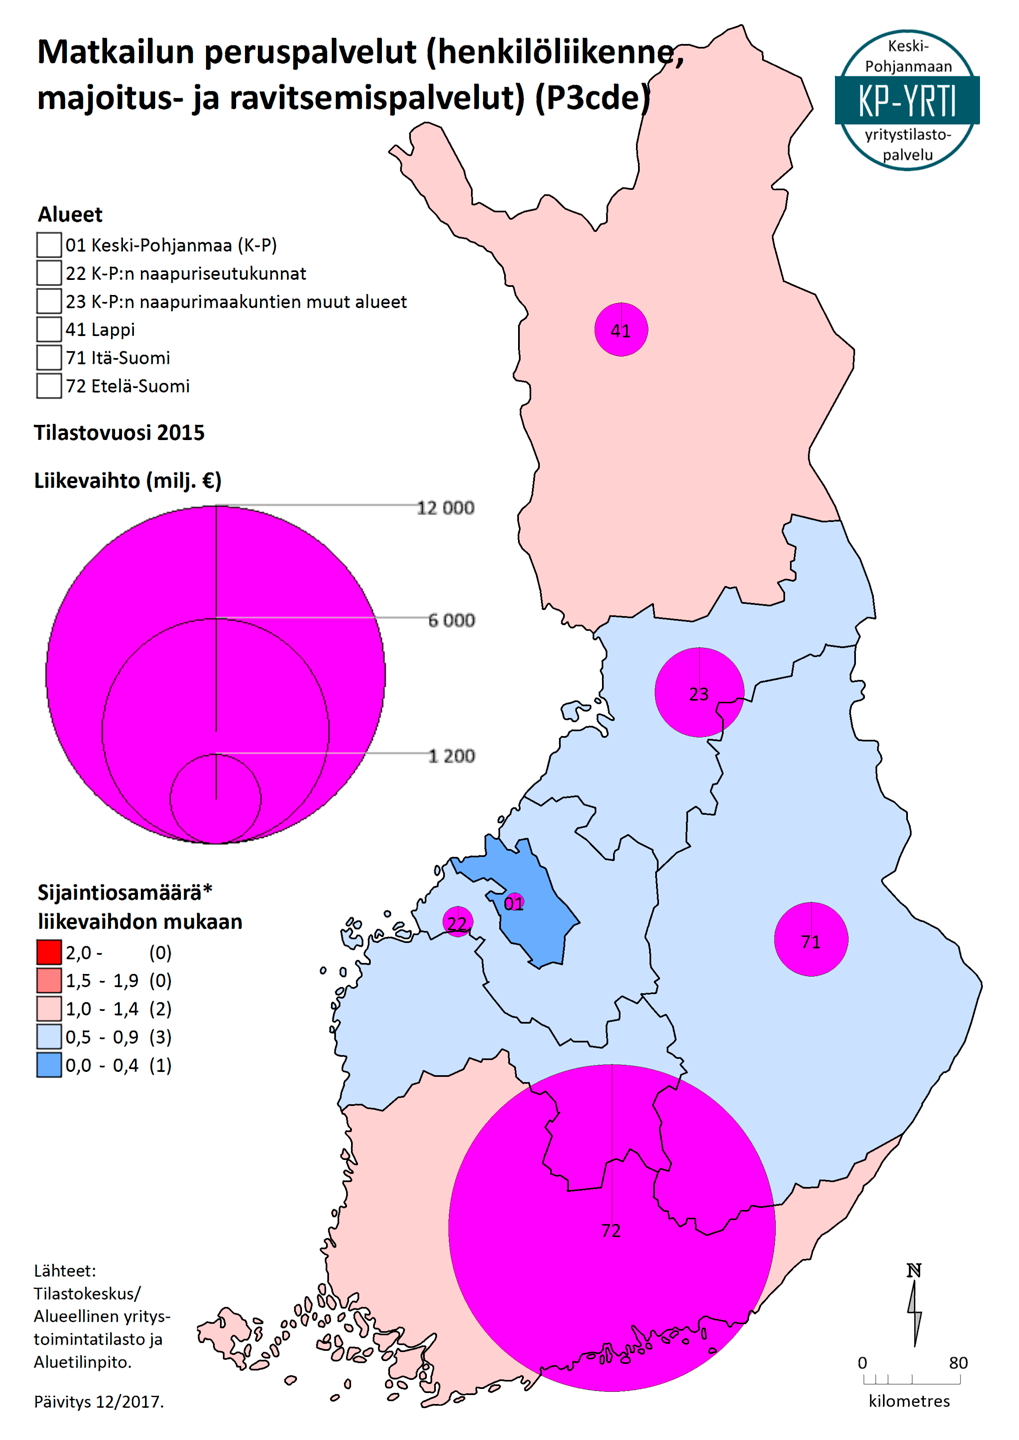 73-P3cde-map-lv-2015-p201712.png